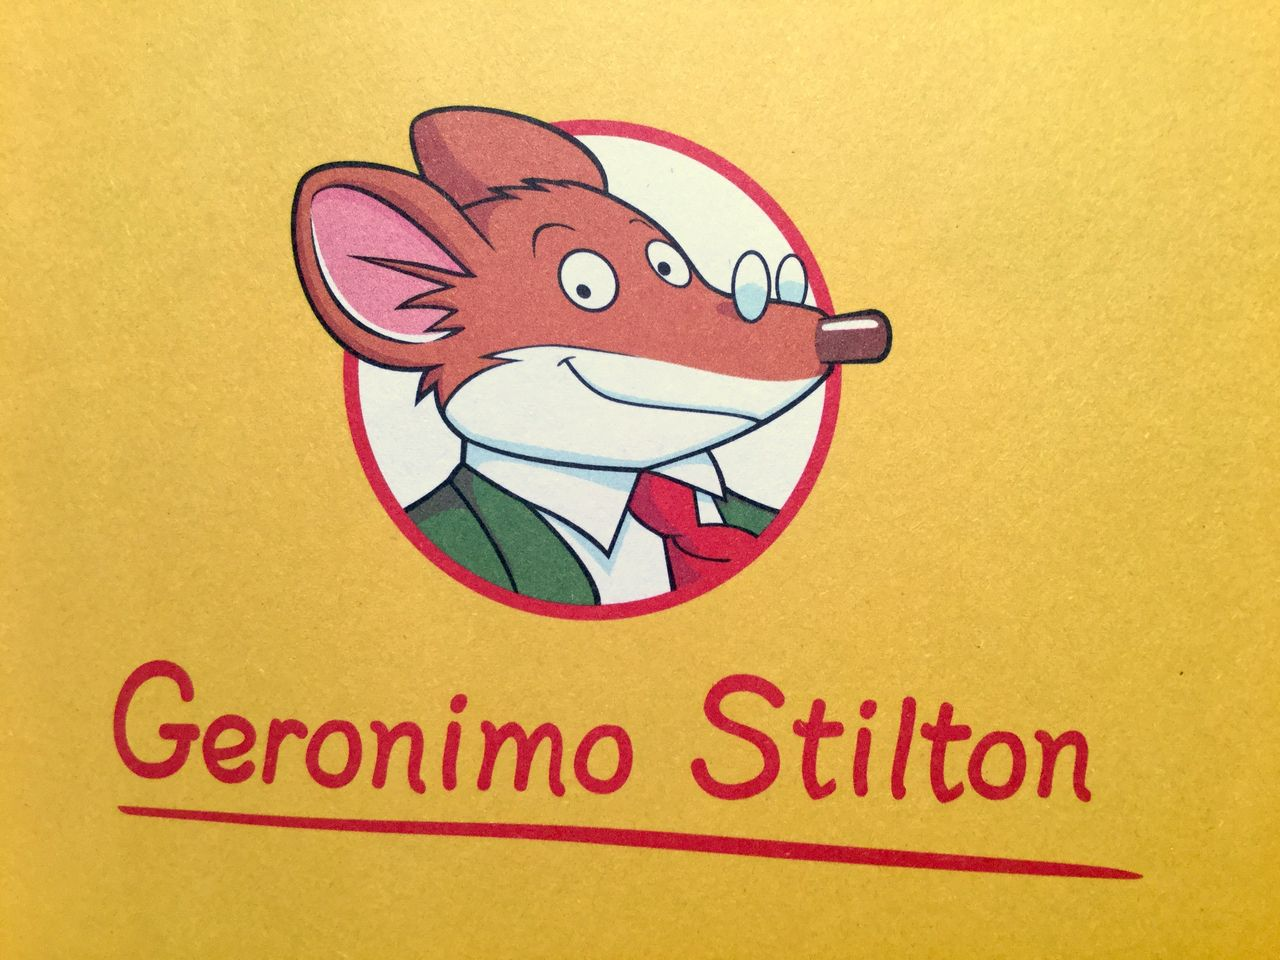 geronimo stilton perch233 no perch233 s236 scaffale basso